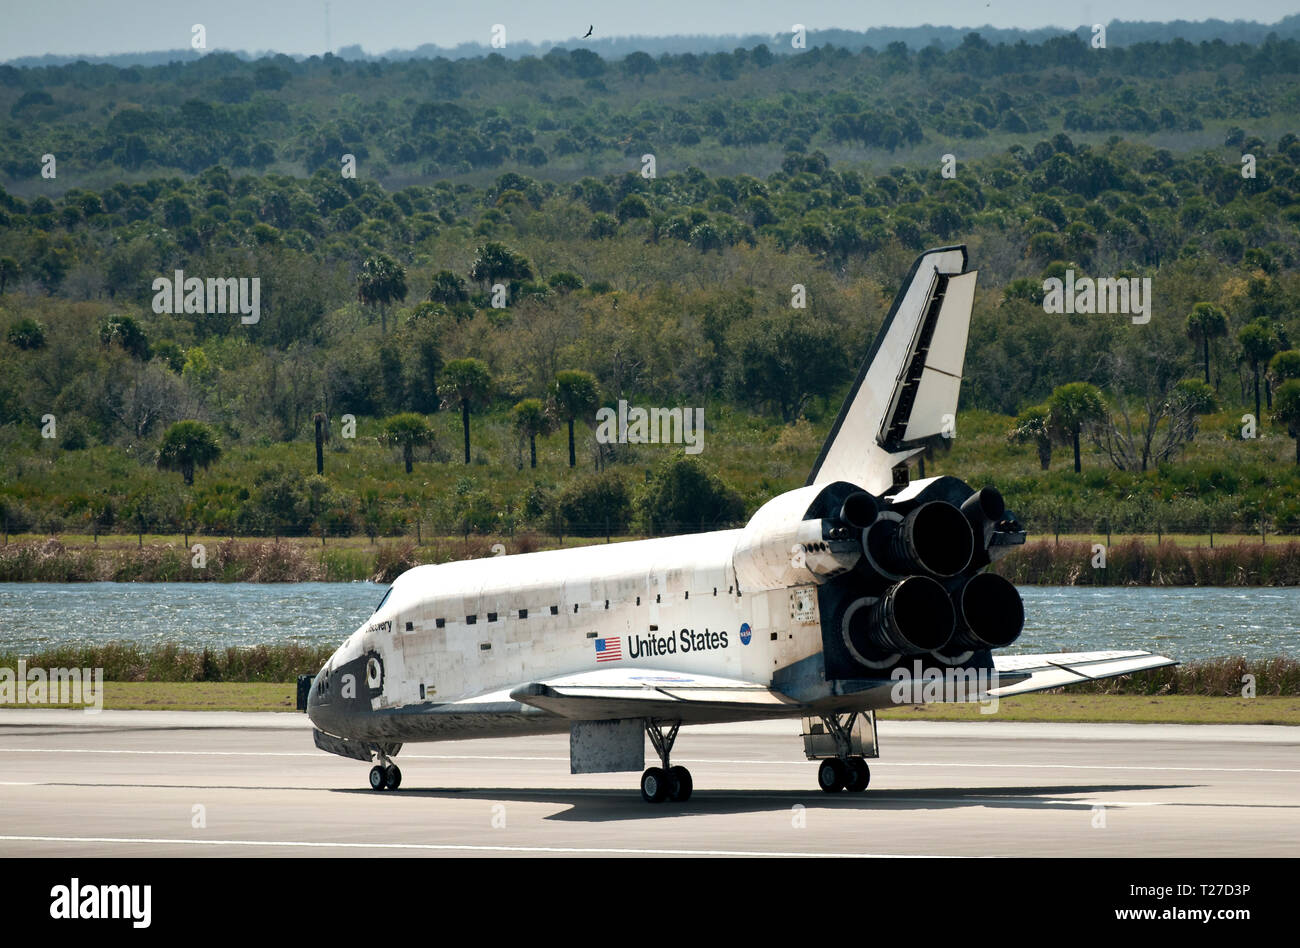 Space Shuttle Discovery (STS-133) is seen shortly after it landed, Wednesday, March 9, 2011, at Kennedy Space Center in Cape Canaveral, Fla., completing its 39th and final flight.  Since 1984, Discovery flew 39 missions, spent 365 days in space, orbited Earth 5,830 times and traveled 148,221,675 miles (NASA/Bill Ingalls) - Stock Image